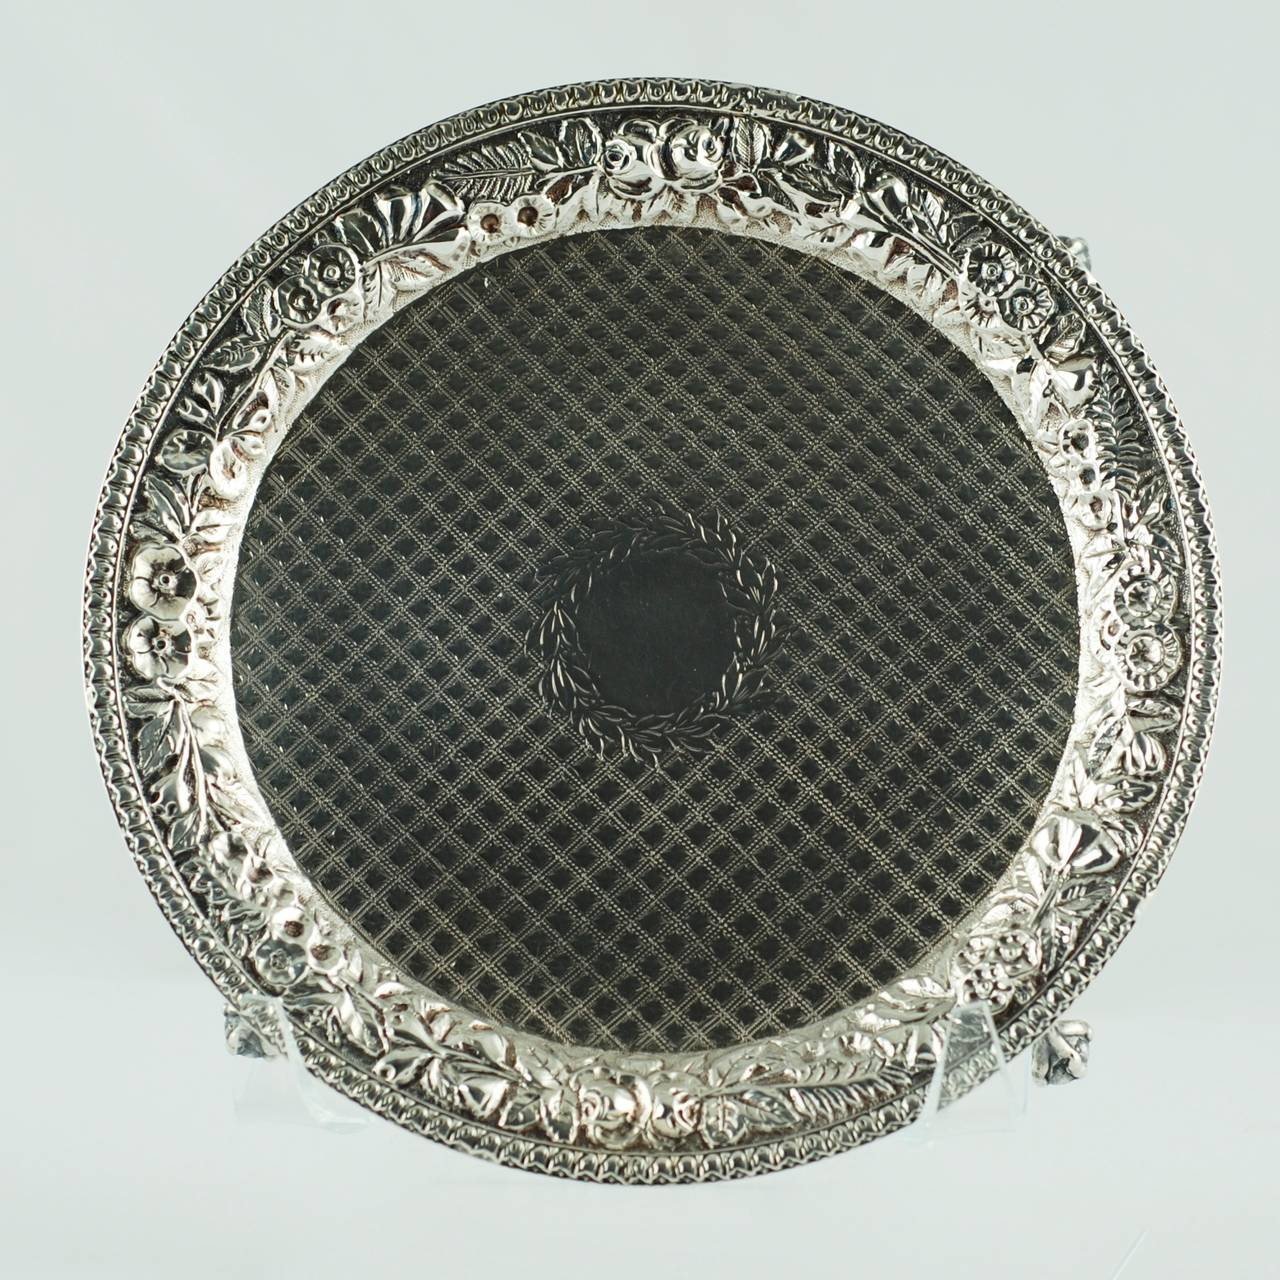 This elegant late 19th century silver salver was made by Baltimore, Maryland based silver manufacturer, S. Kirk & Son. The piece features an ornate chased floral shoulder finished with a banded rim. The face of the tray is decorated with an